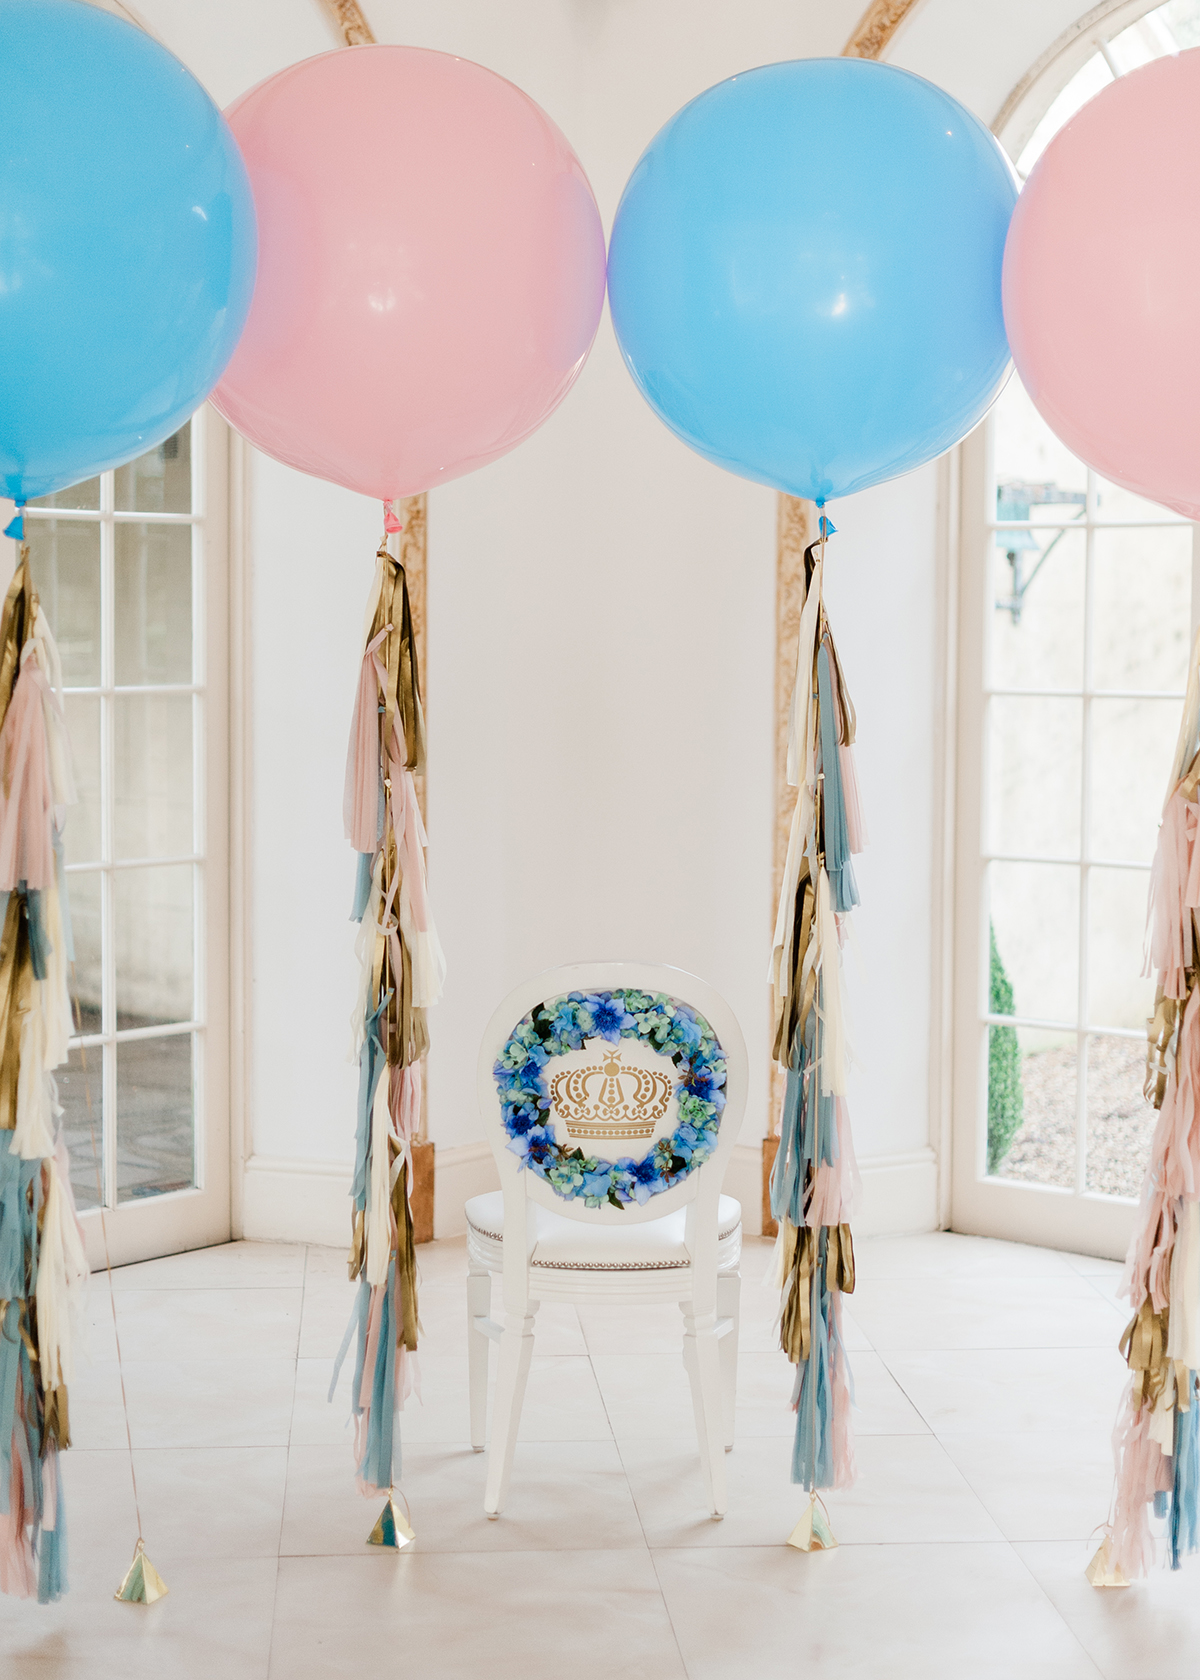 Royal baby shower - Perfect Venue